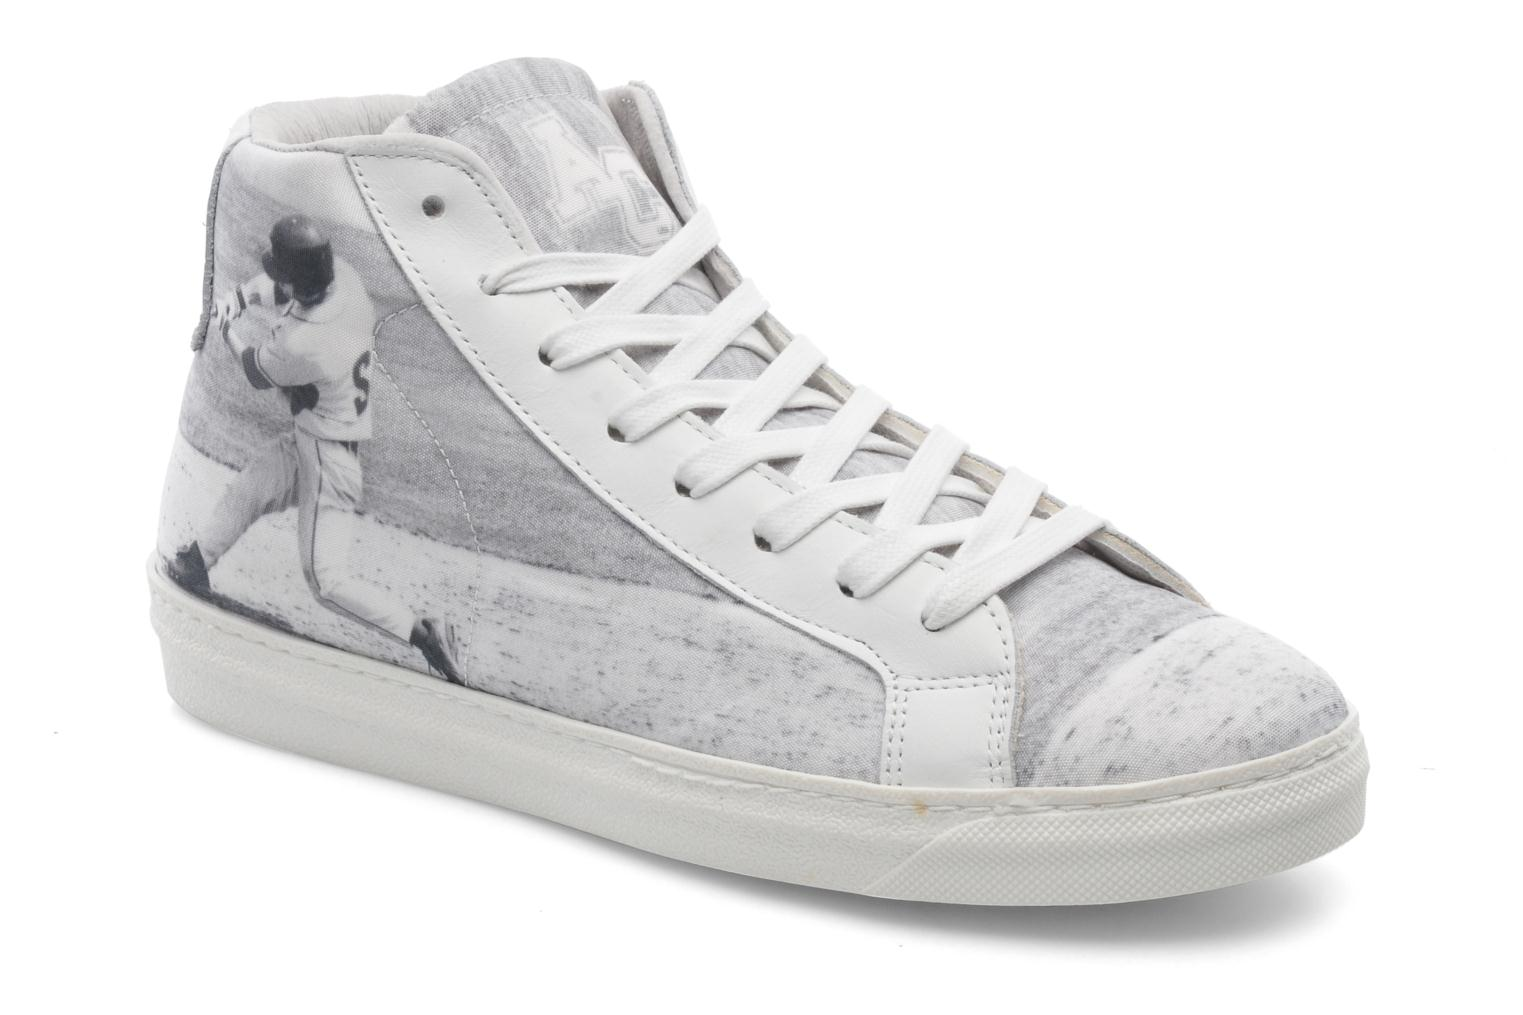 Sneakers Sports m by American College